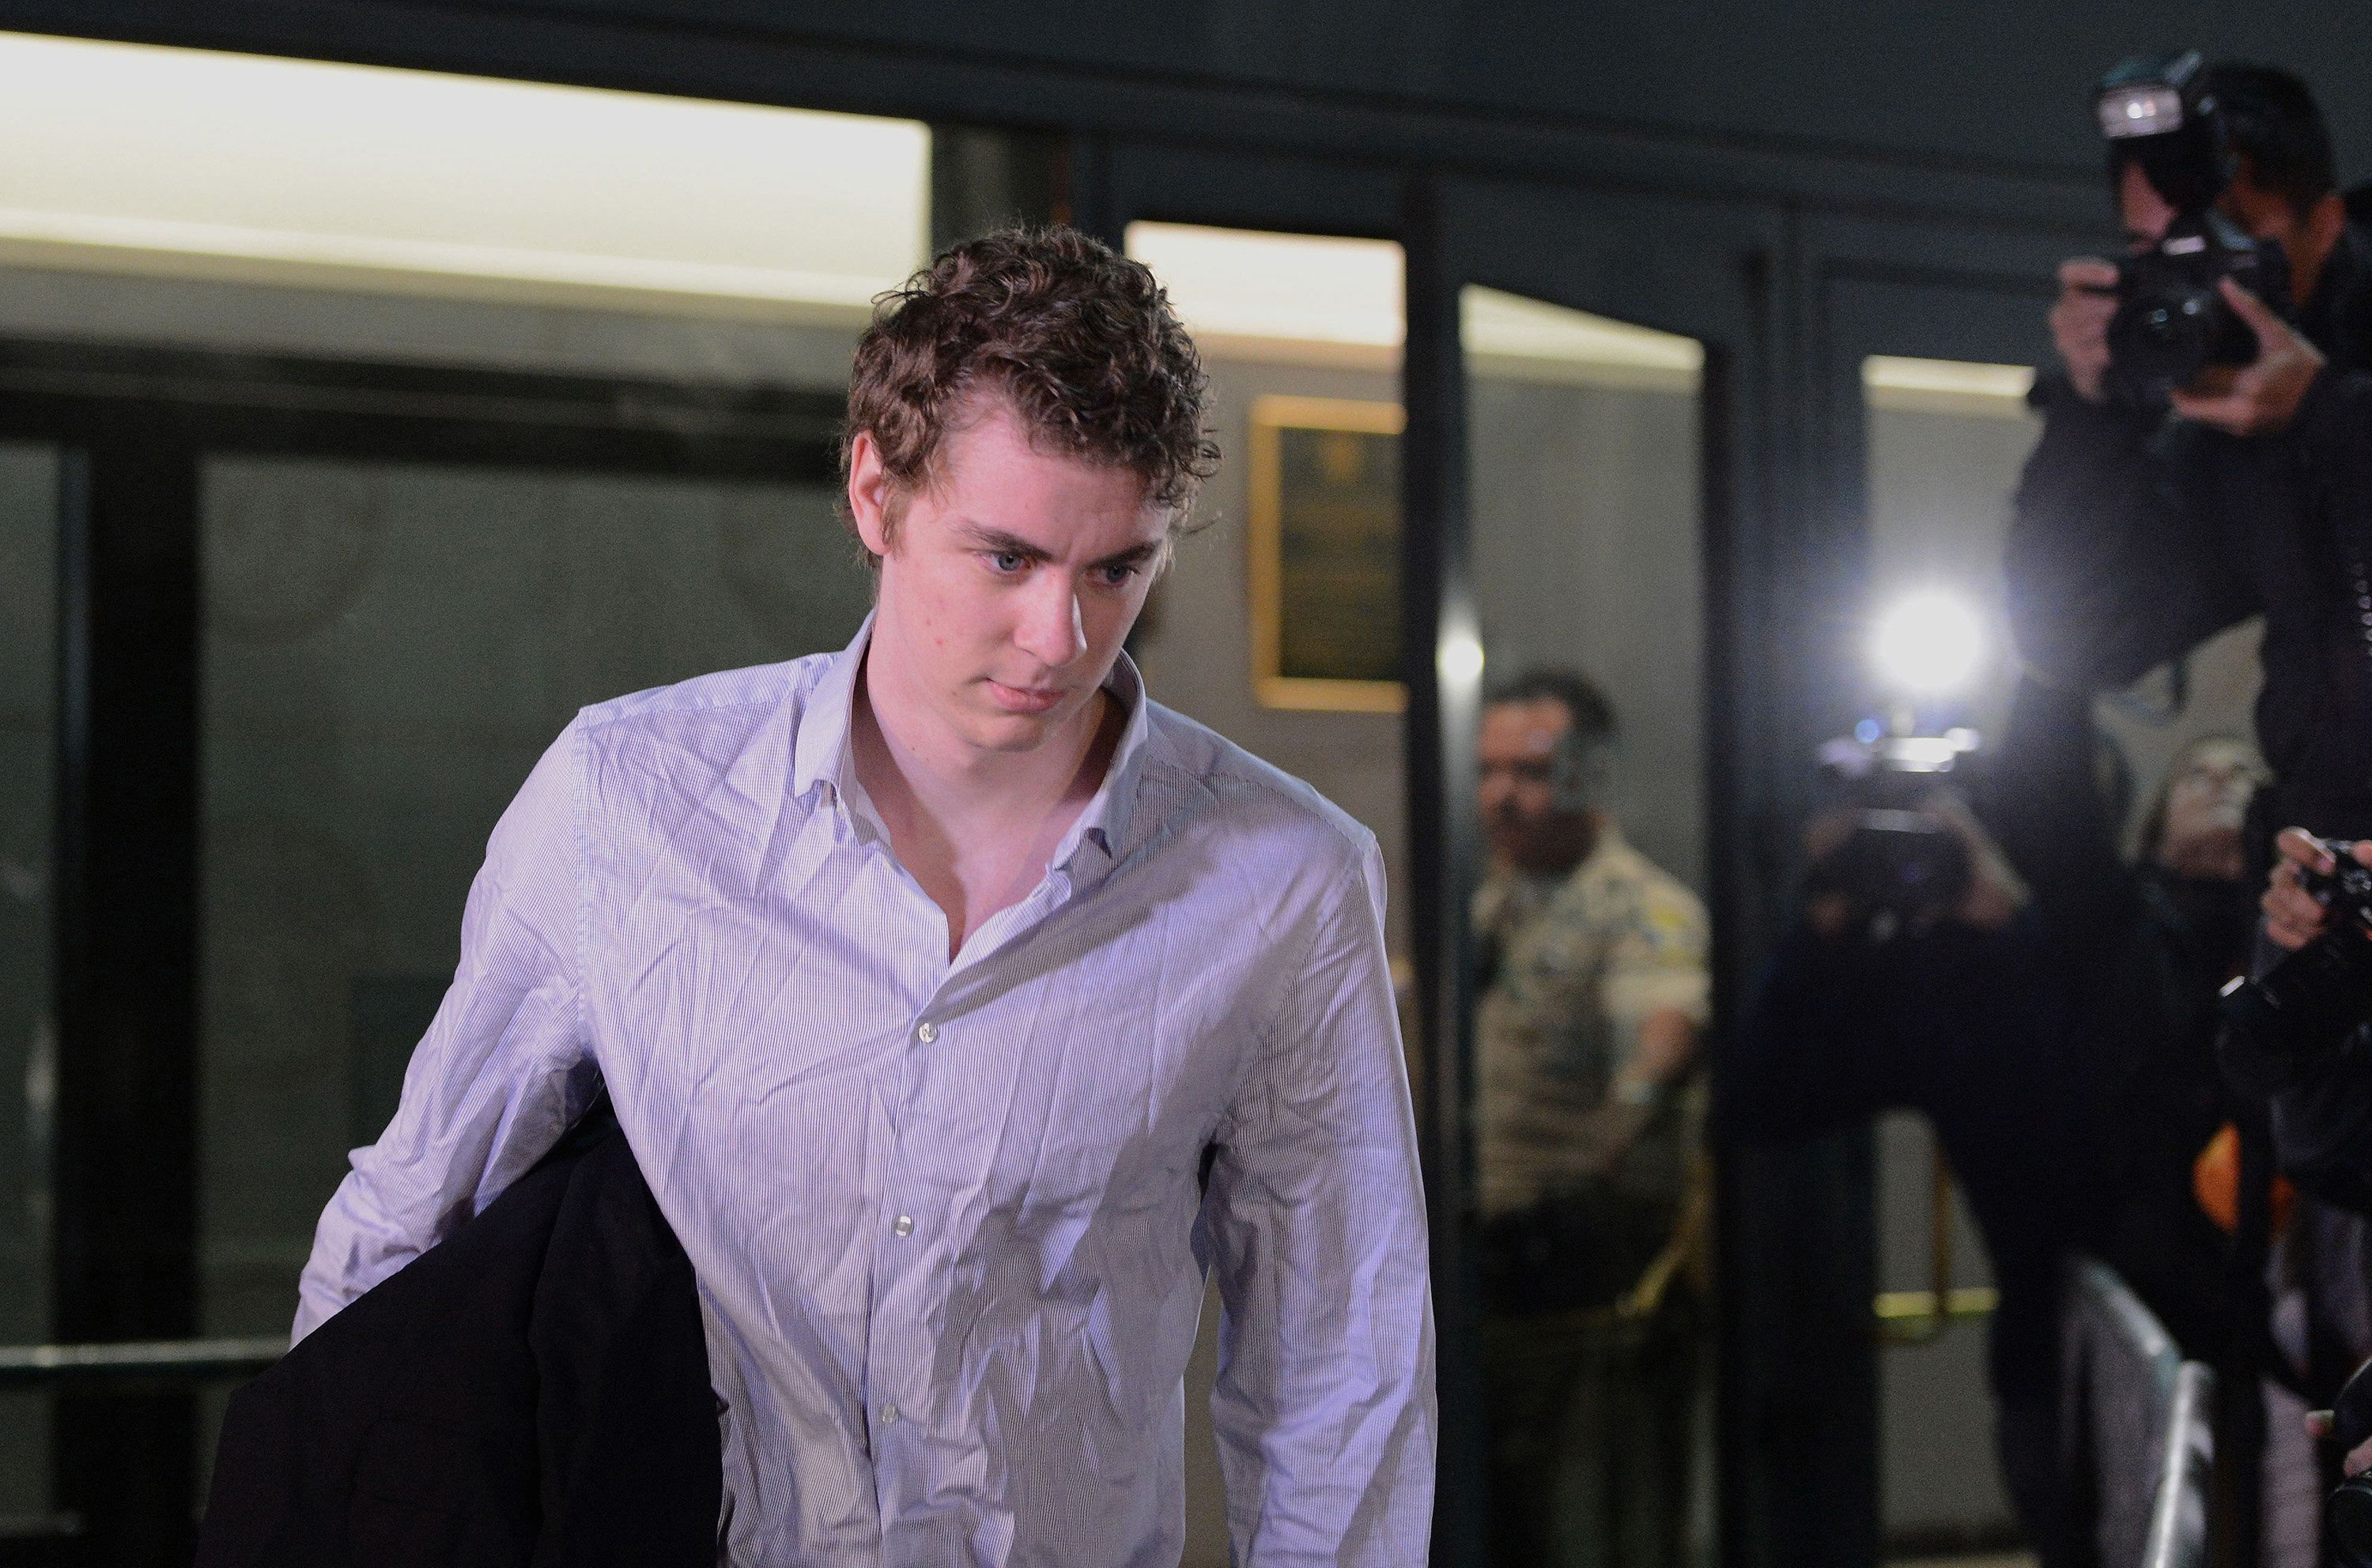 Brock Turner Appeals Rape Conviction With Argument He Only Wanted